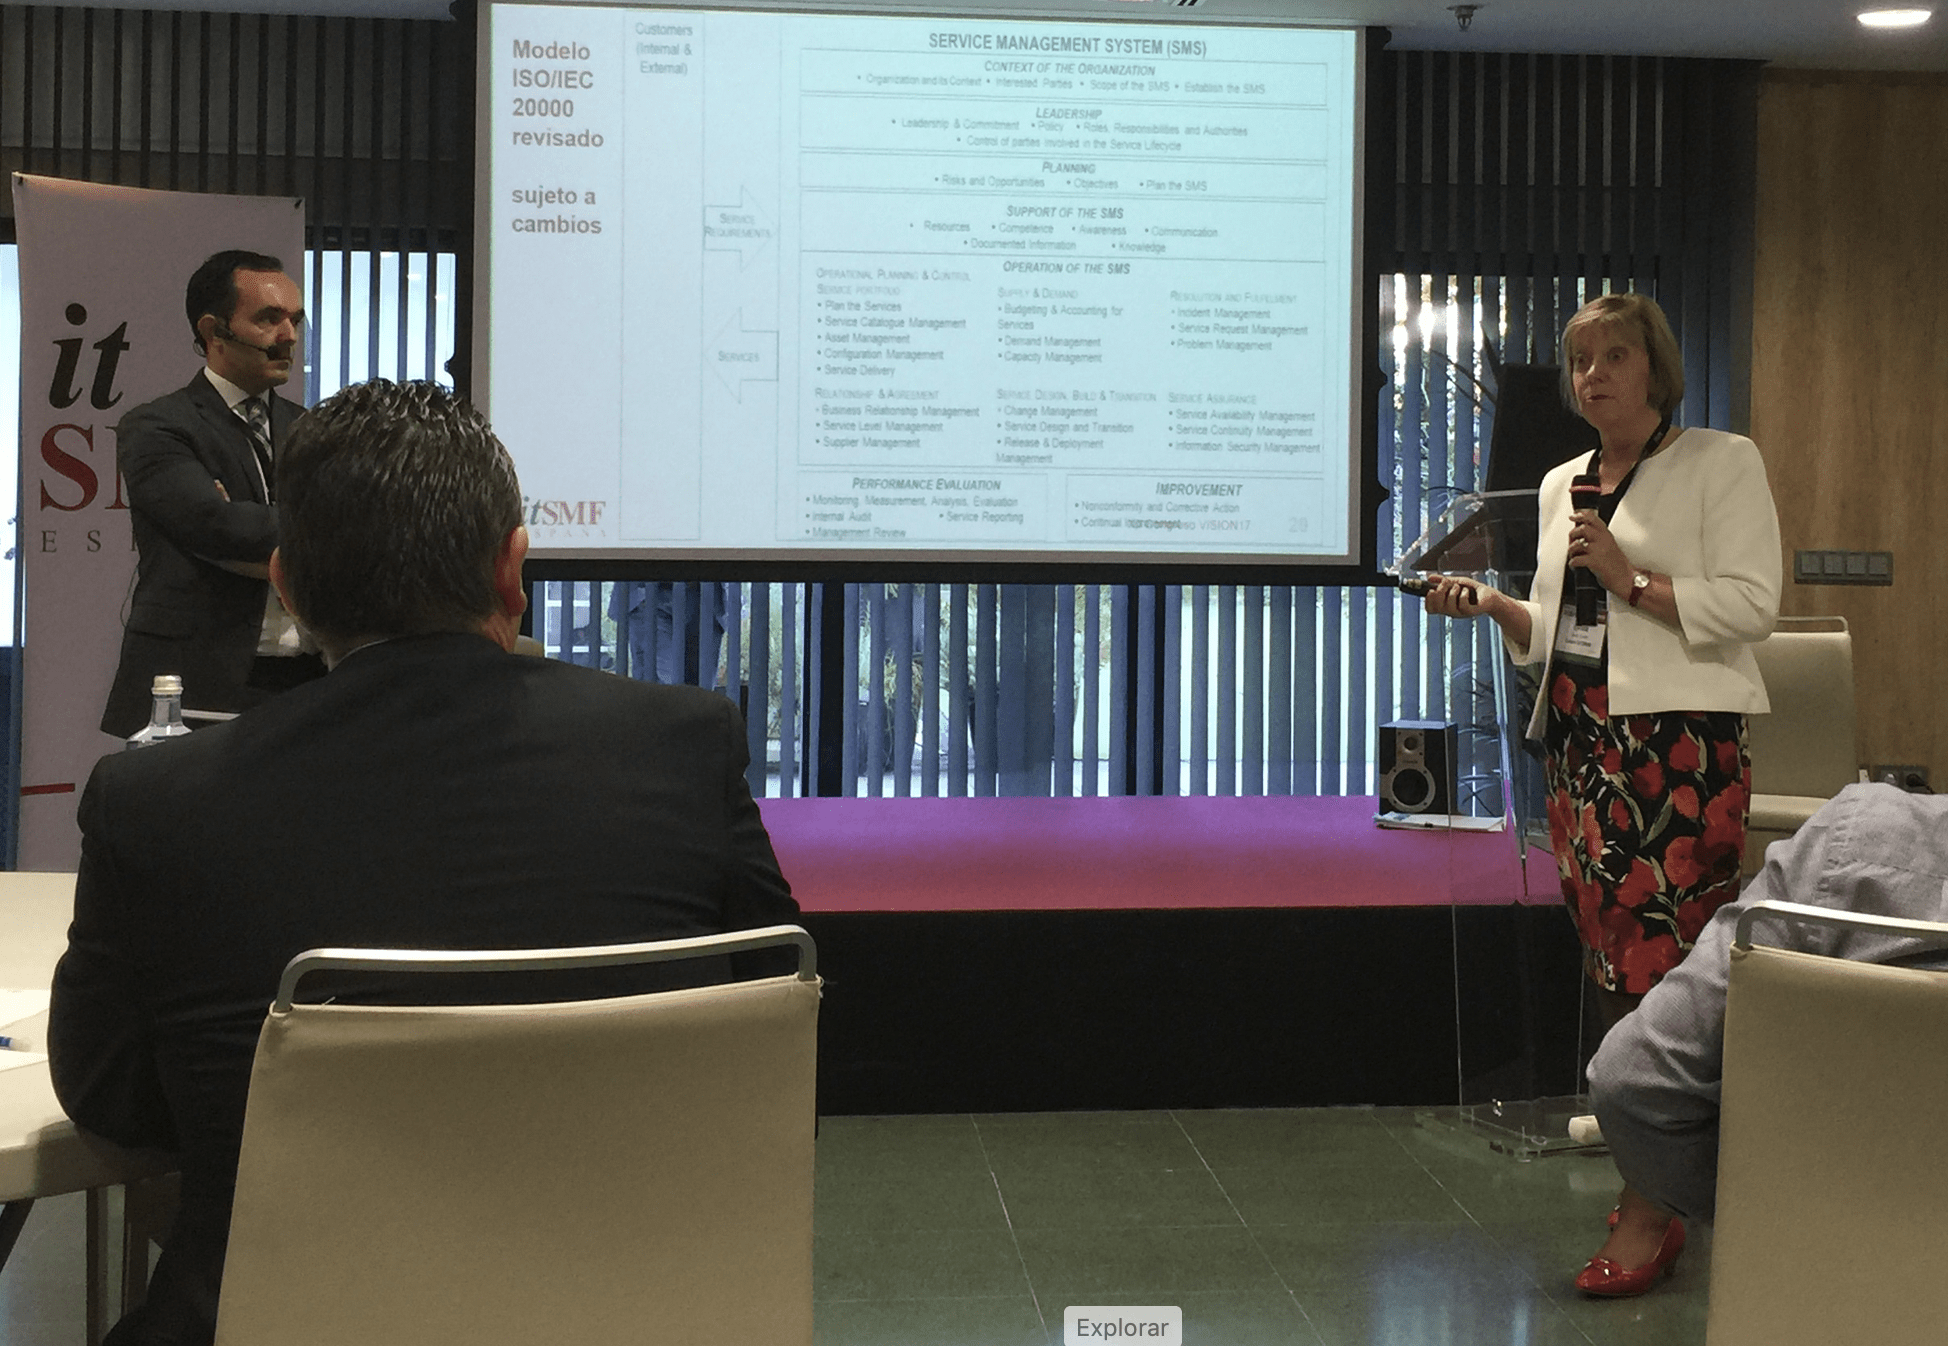 Diego Berea and Lynda Cooper explain the main features of the ISO/IEC 20000-1:2018